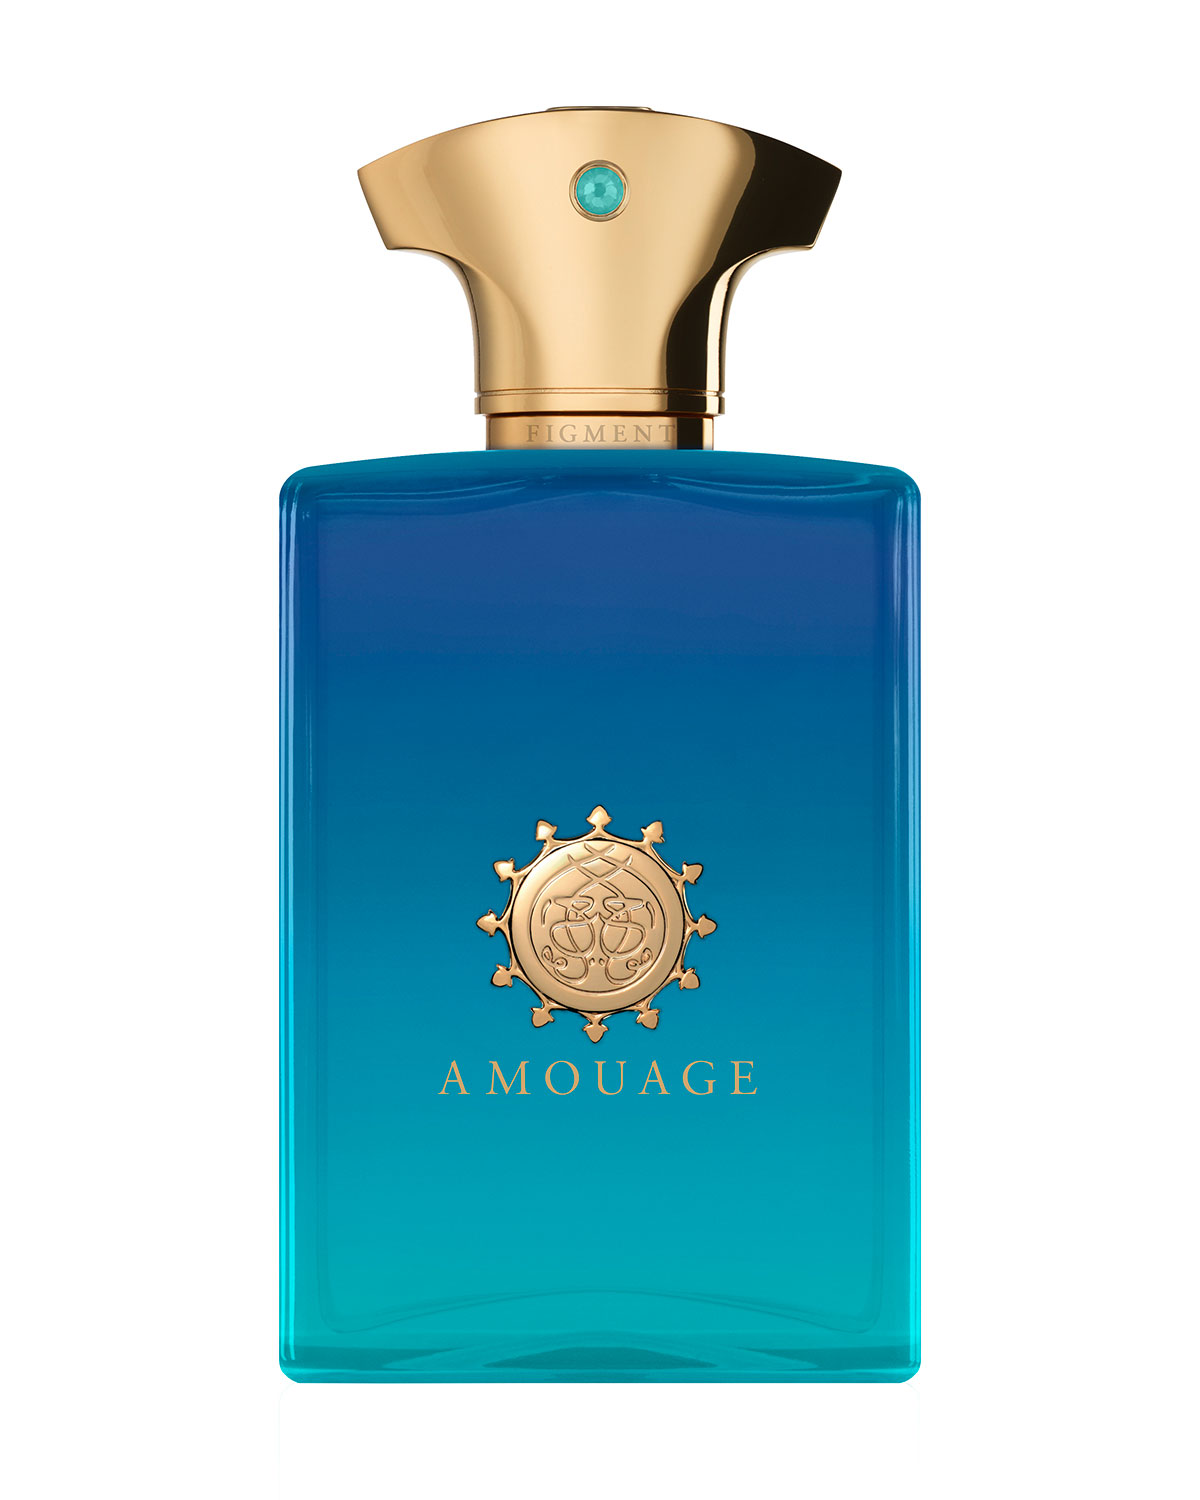 Amouage Figment man edp 100 ml.